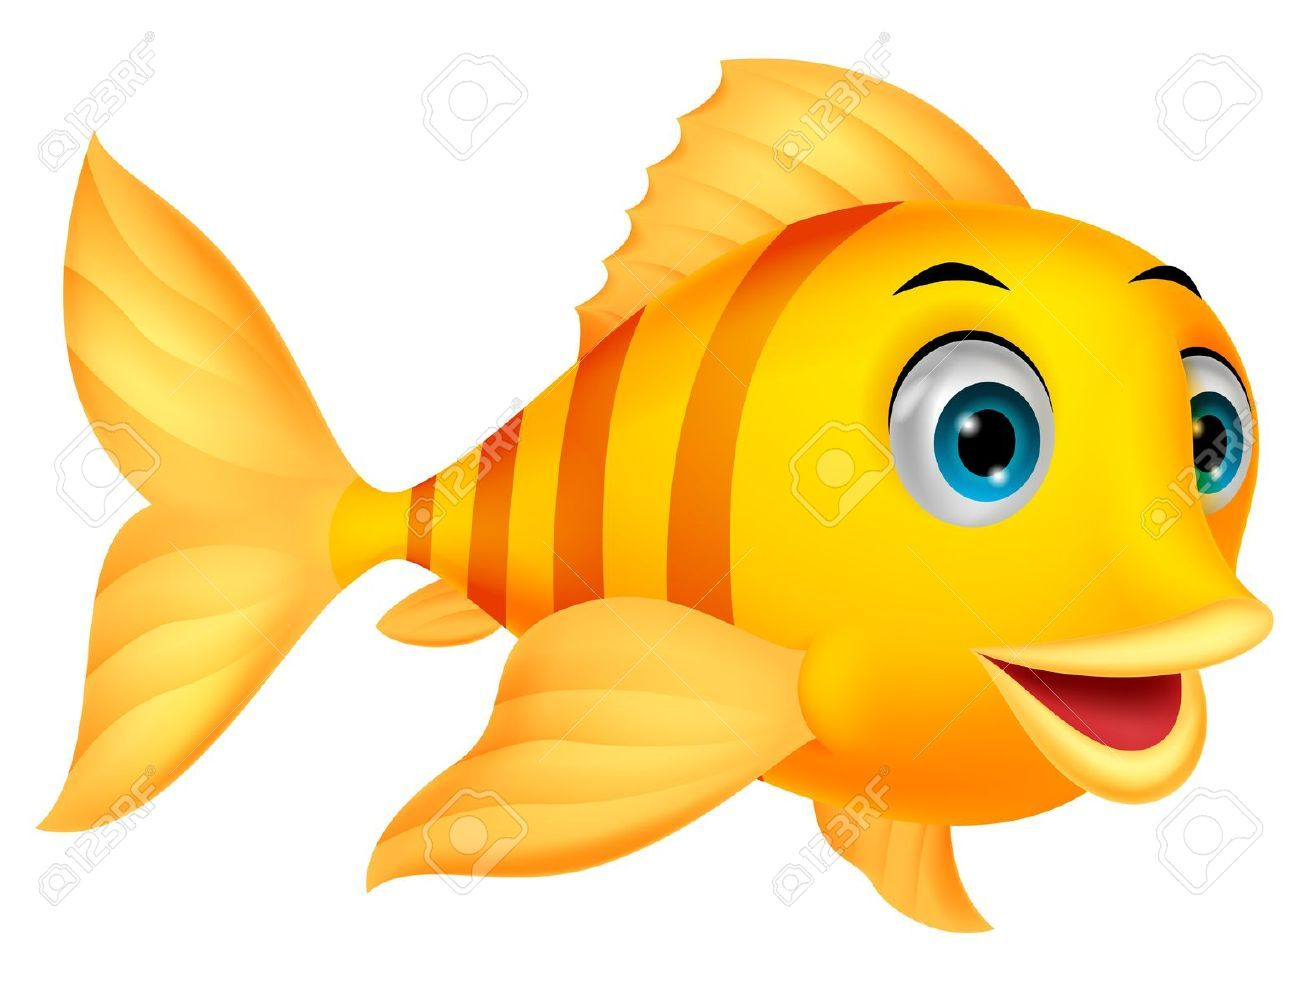 Cute Fish Cartoon Royalty Free Cliparts Vectors And